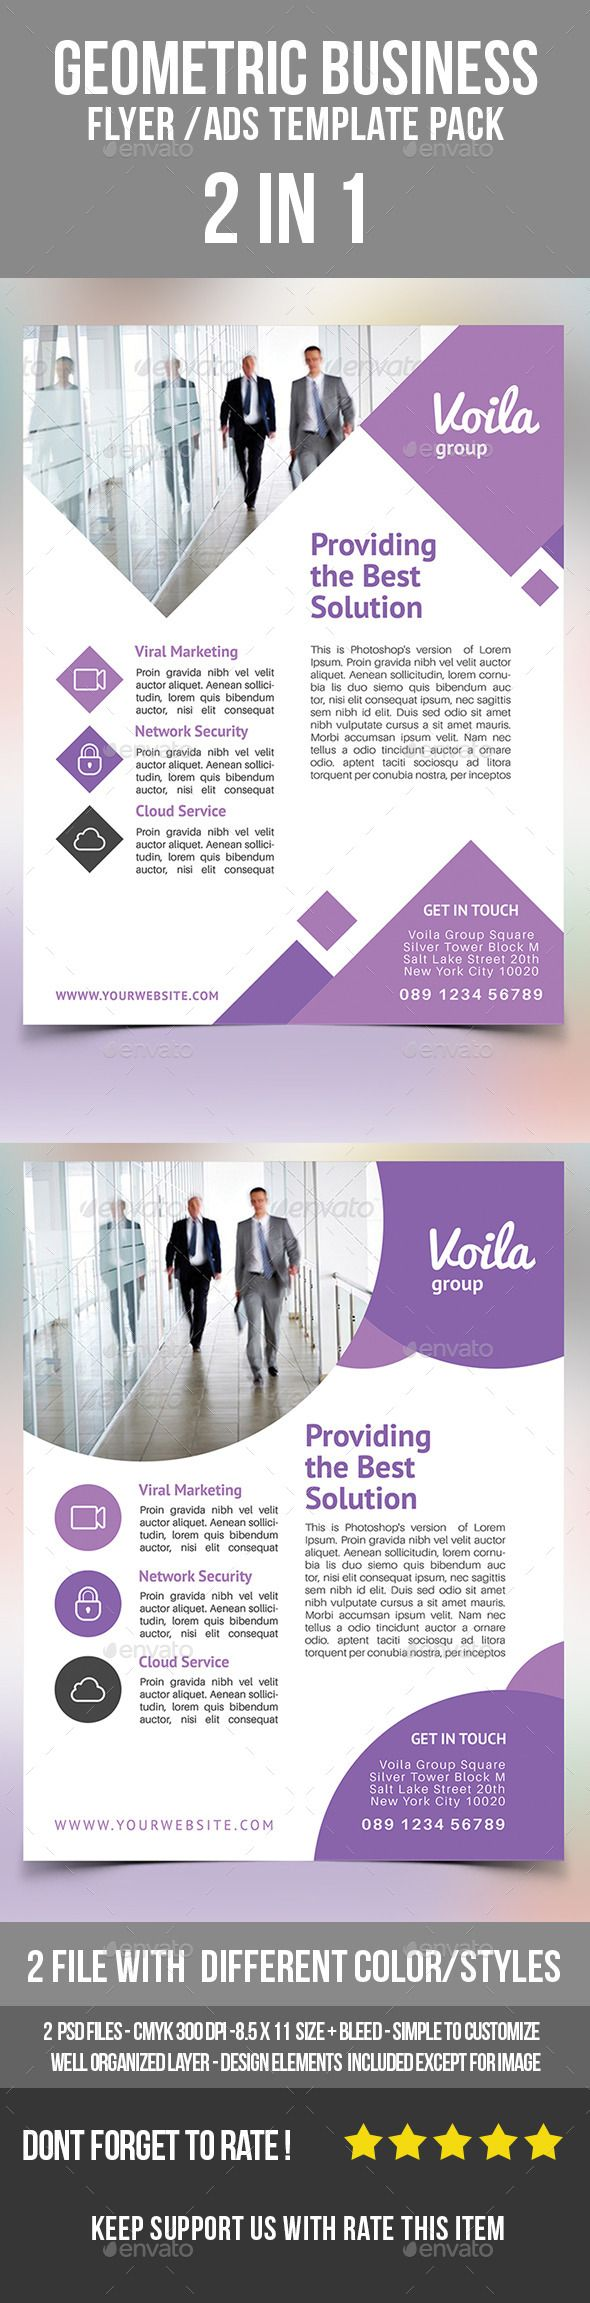 best images about flyer business flyer templates geometric business flyer ads